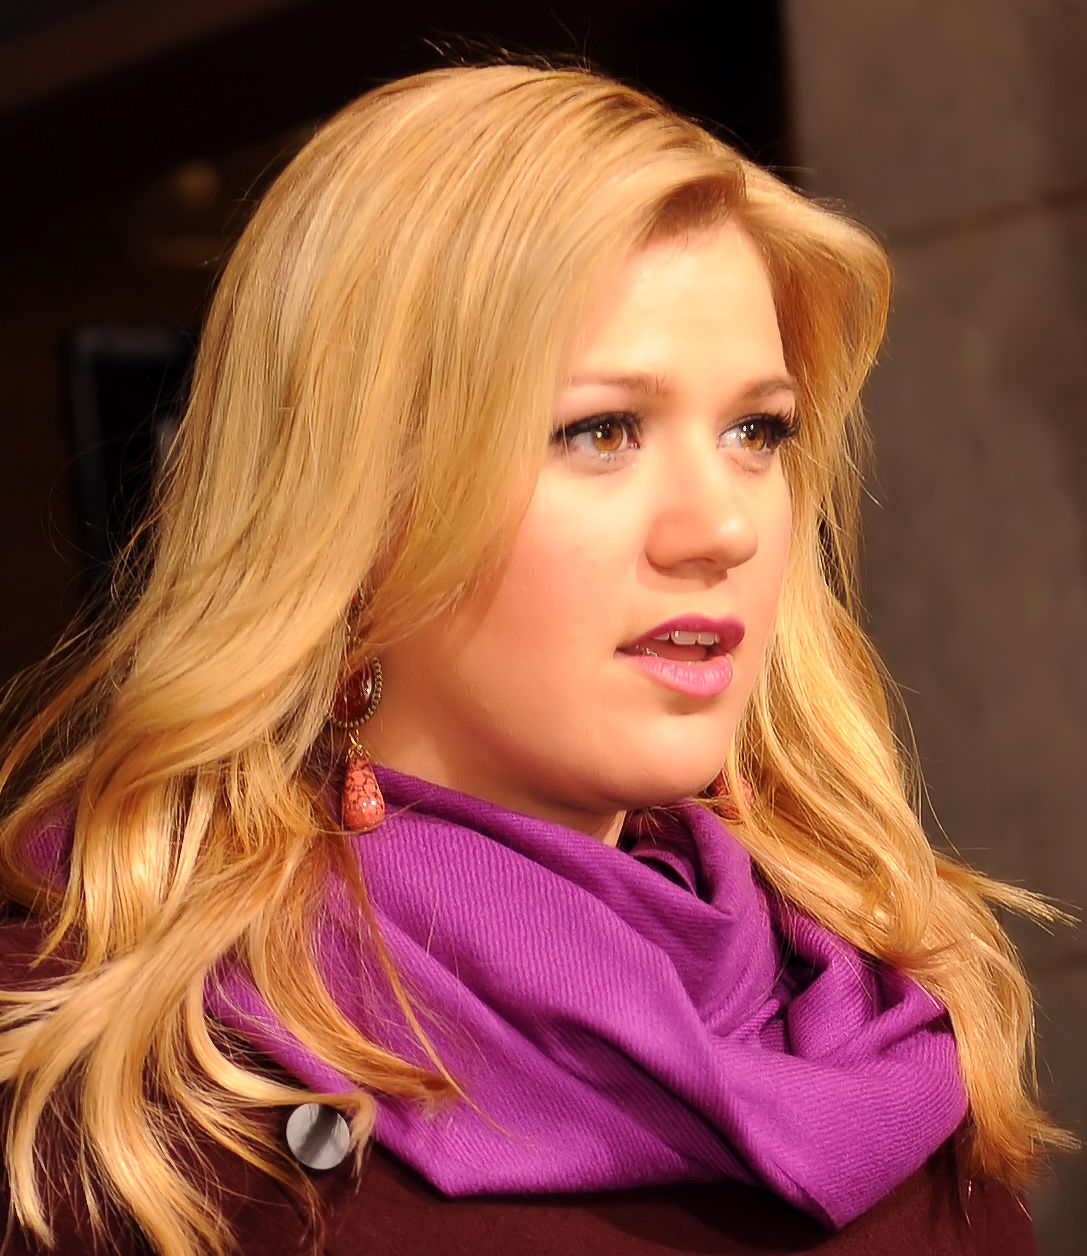 43. Kelly Clarkson 43. Kelly Clarkson new pics